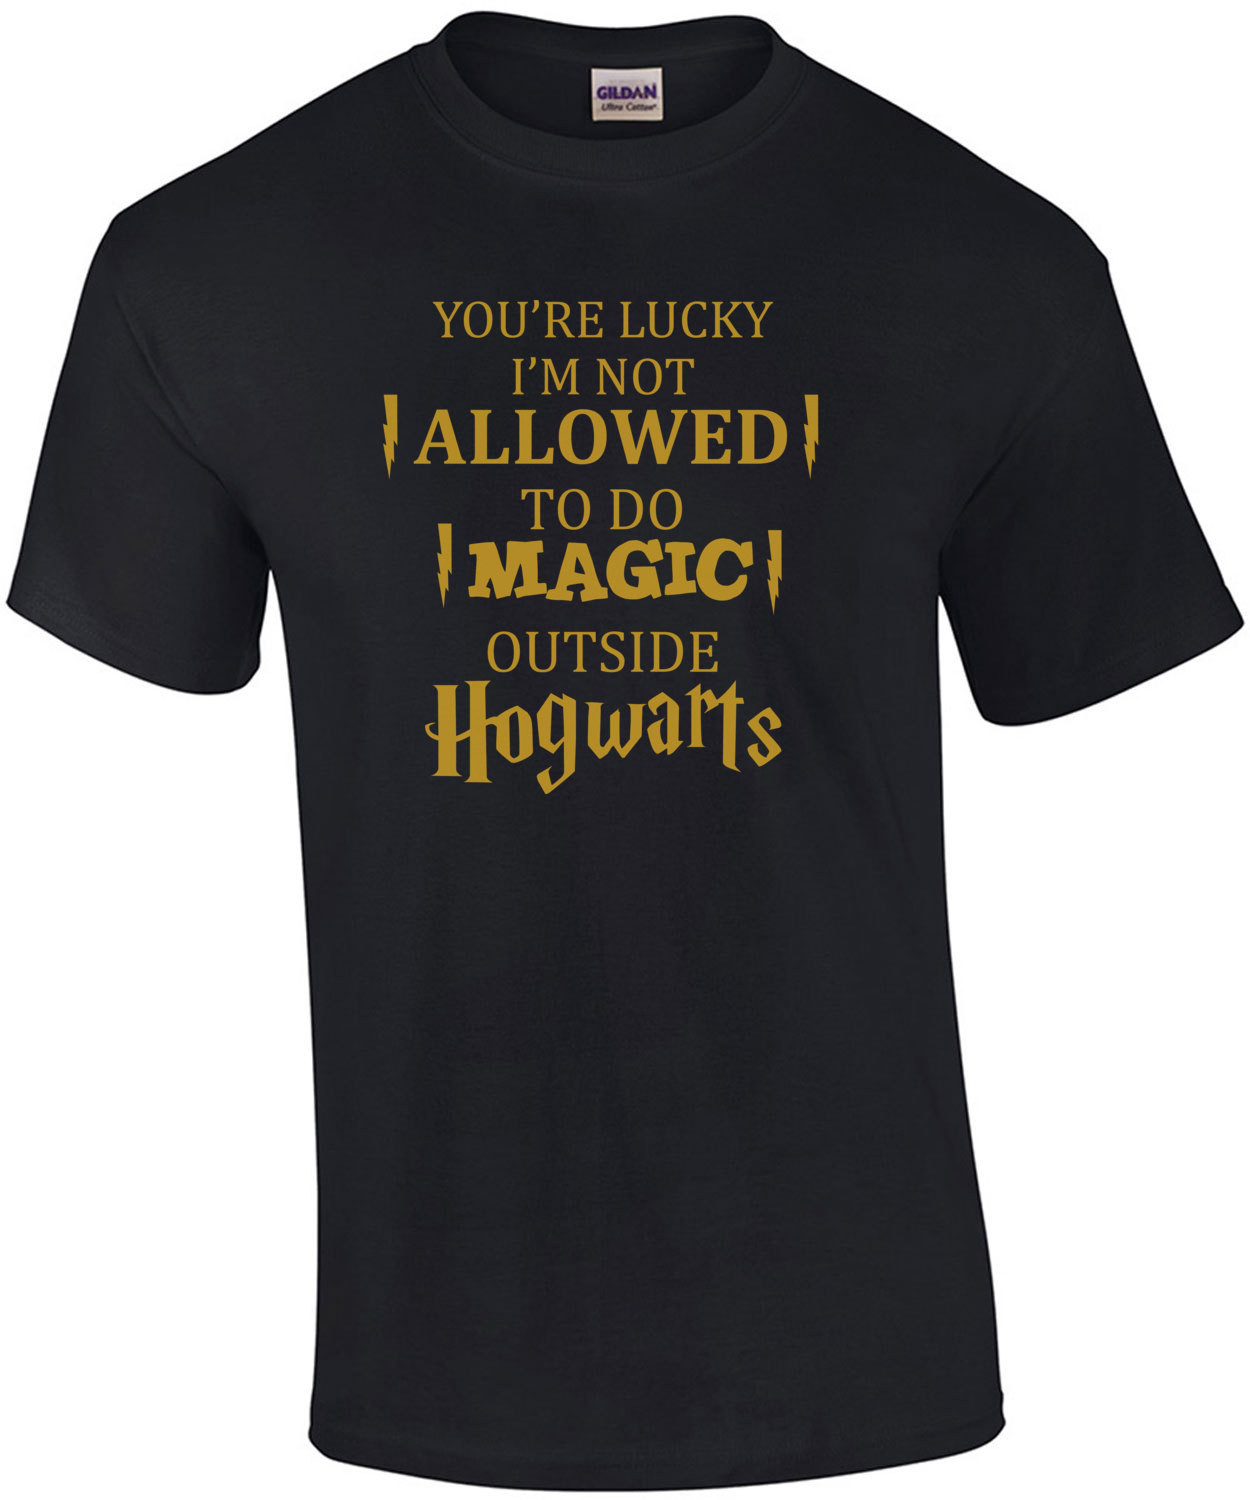 You're lucky I'm not allowed to do magic outside Hogwarts - Harry Potter T-Shirt